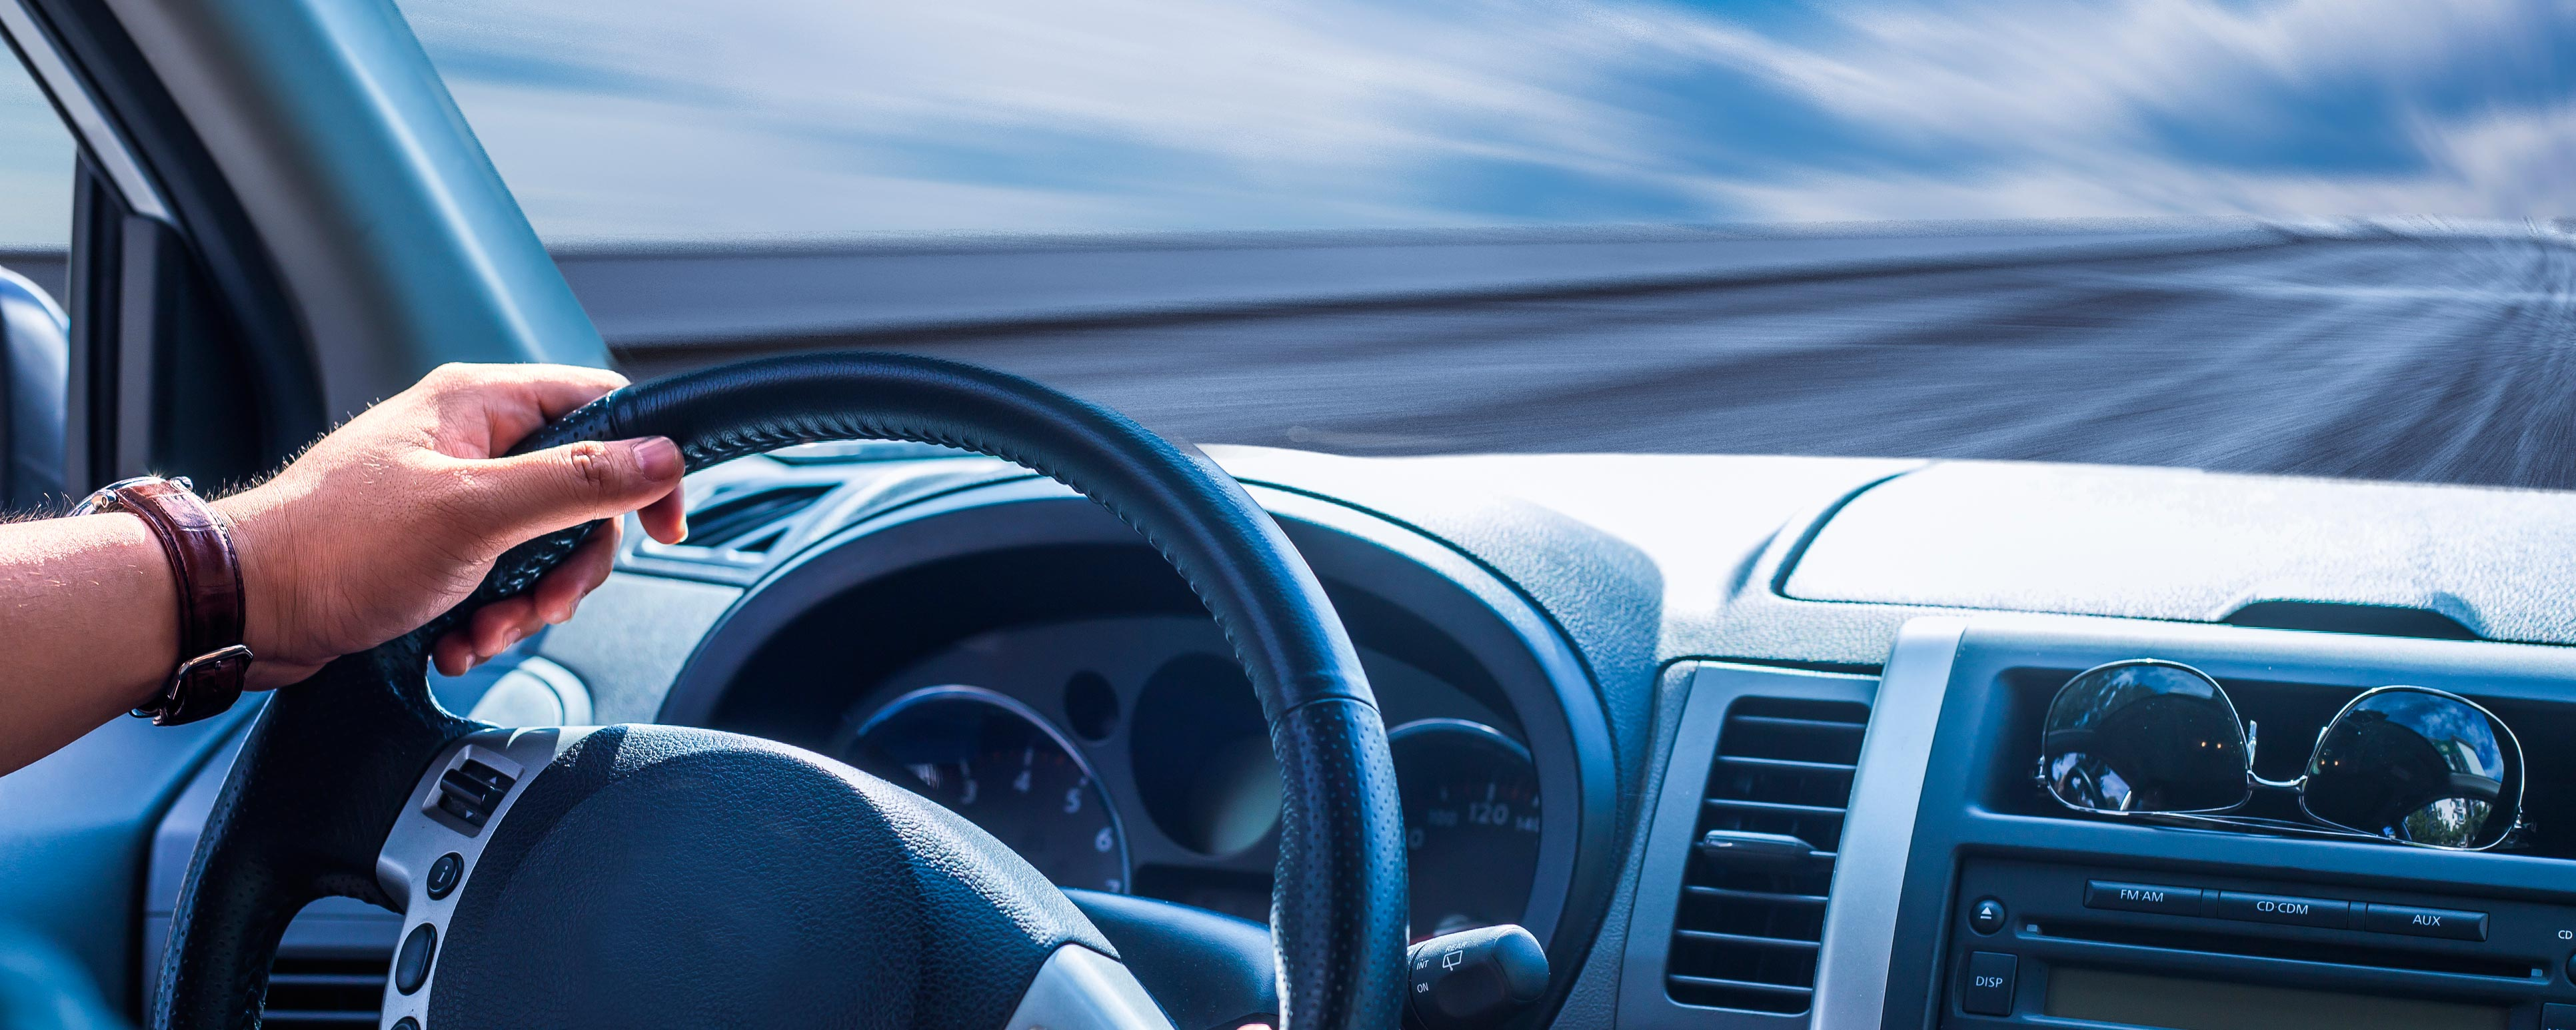 The issue of speeding and reckless driving at public places